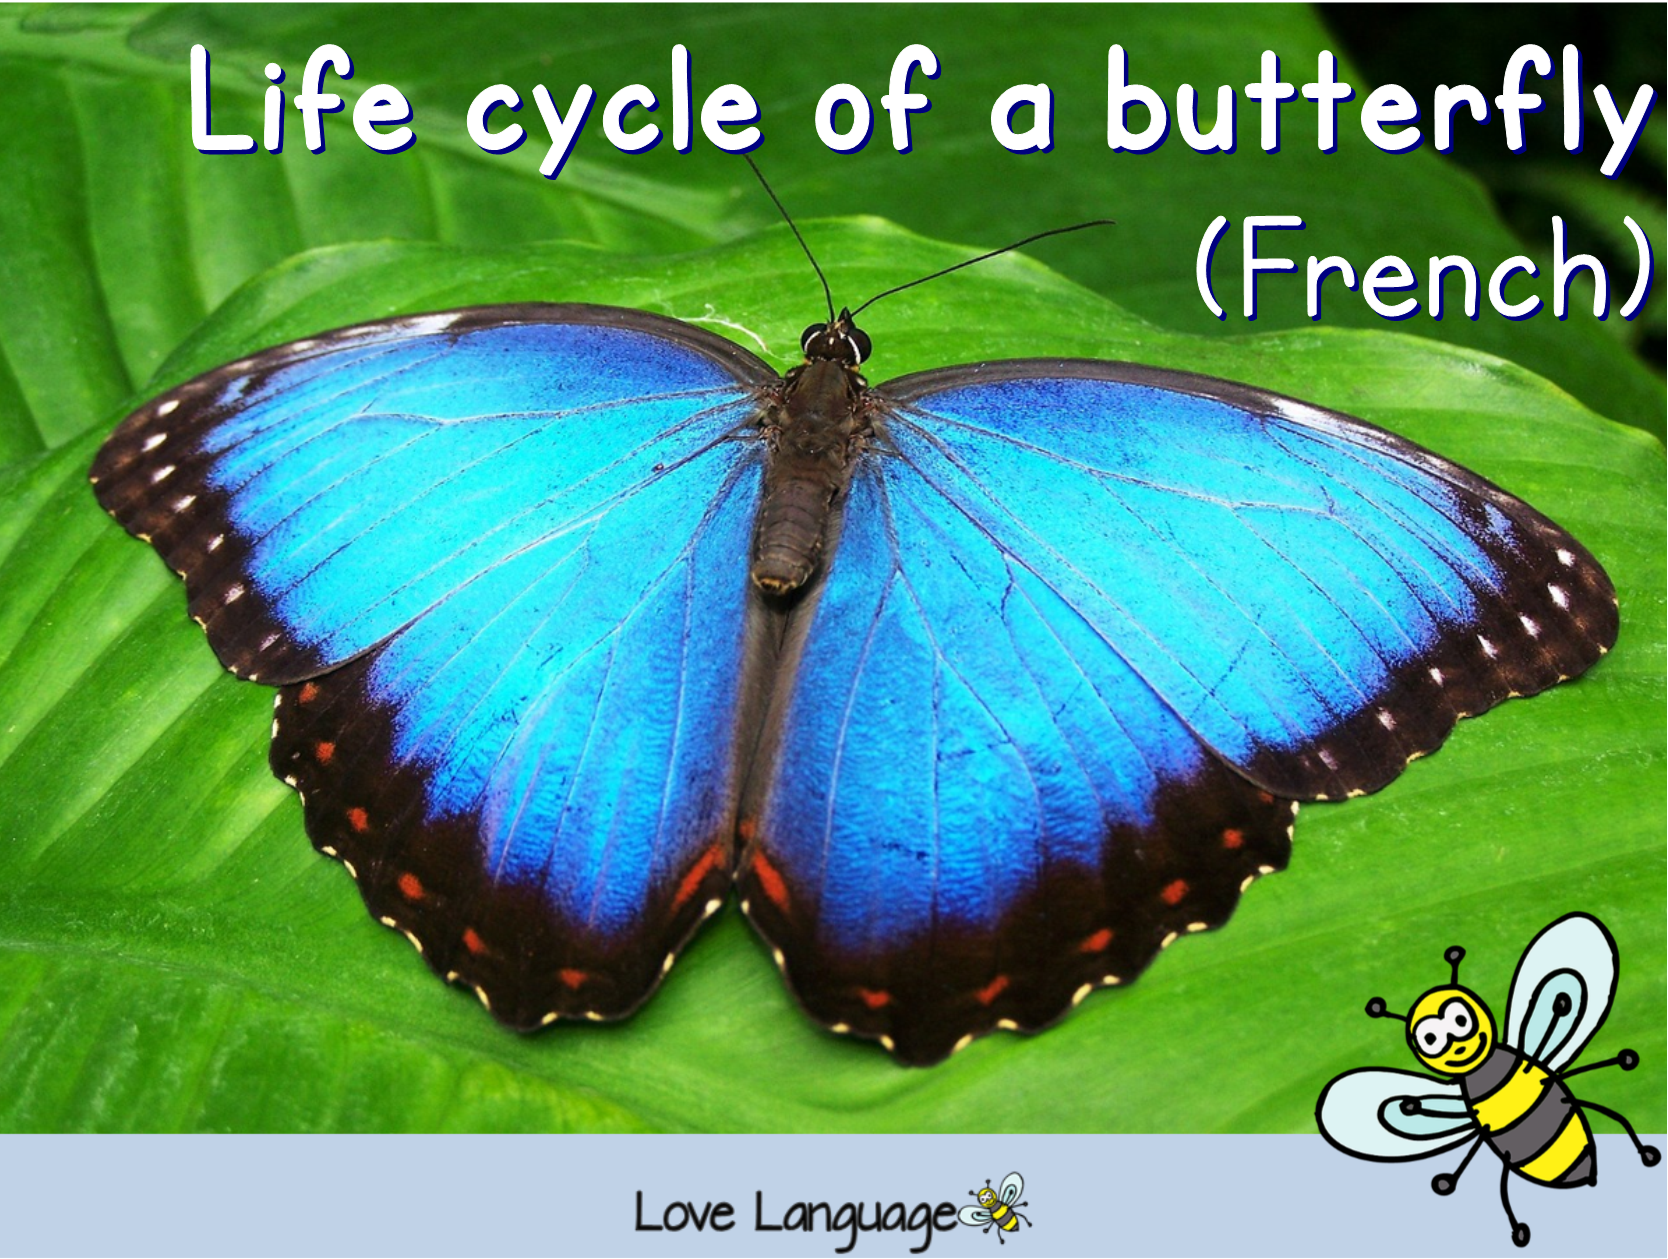 Life cycle of a butterfly in French bundle